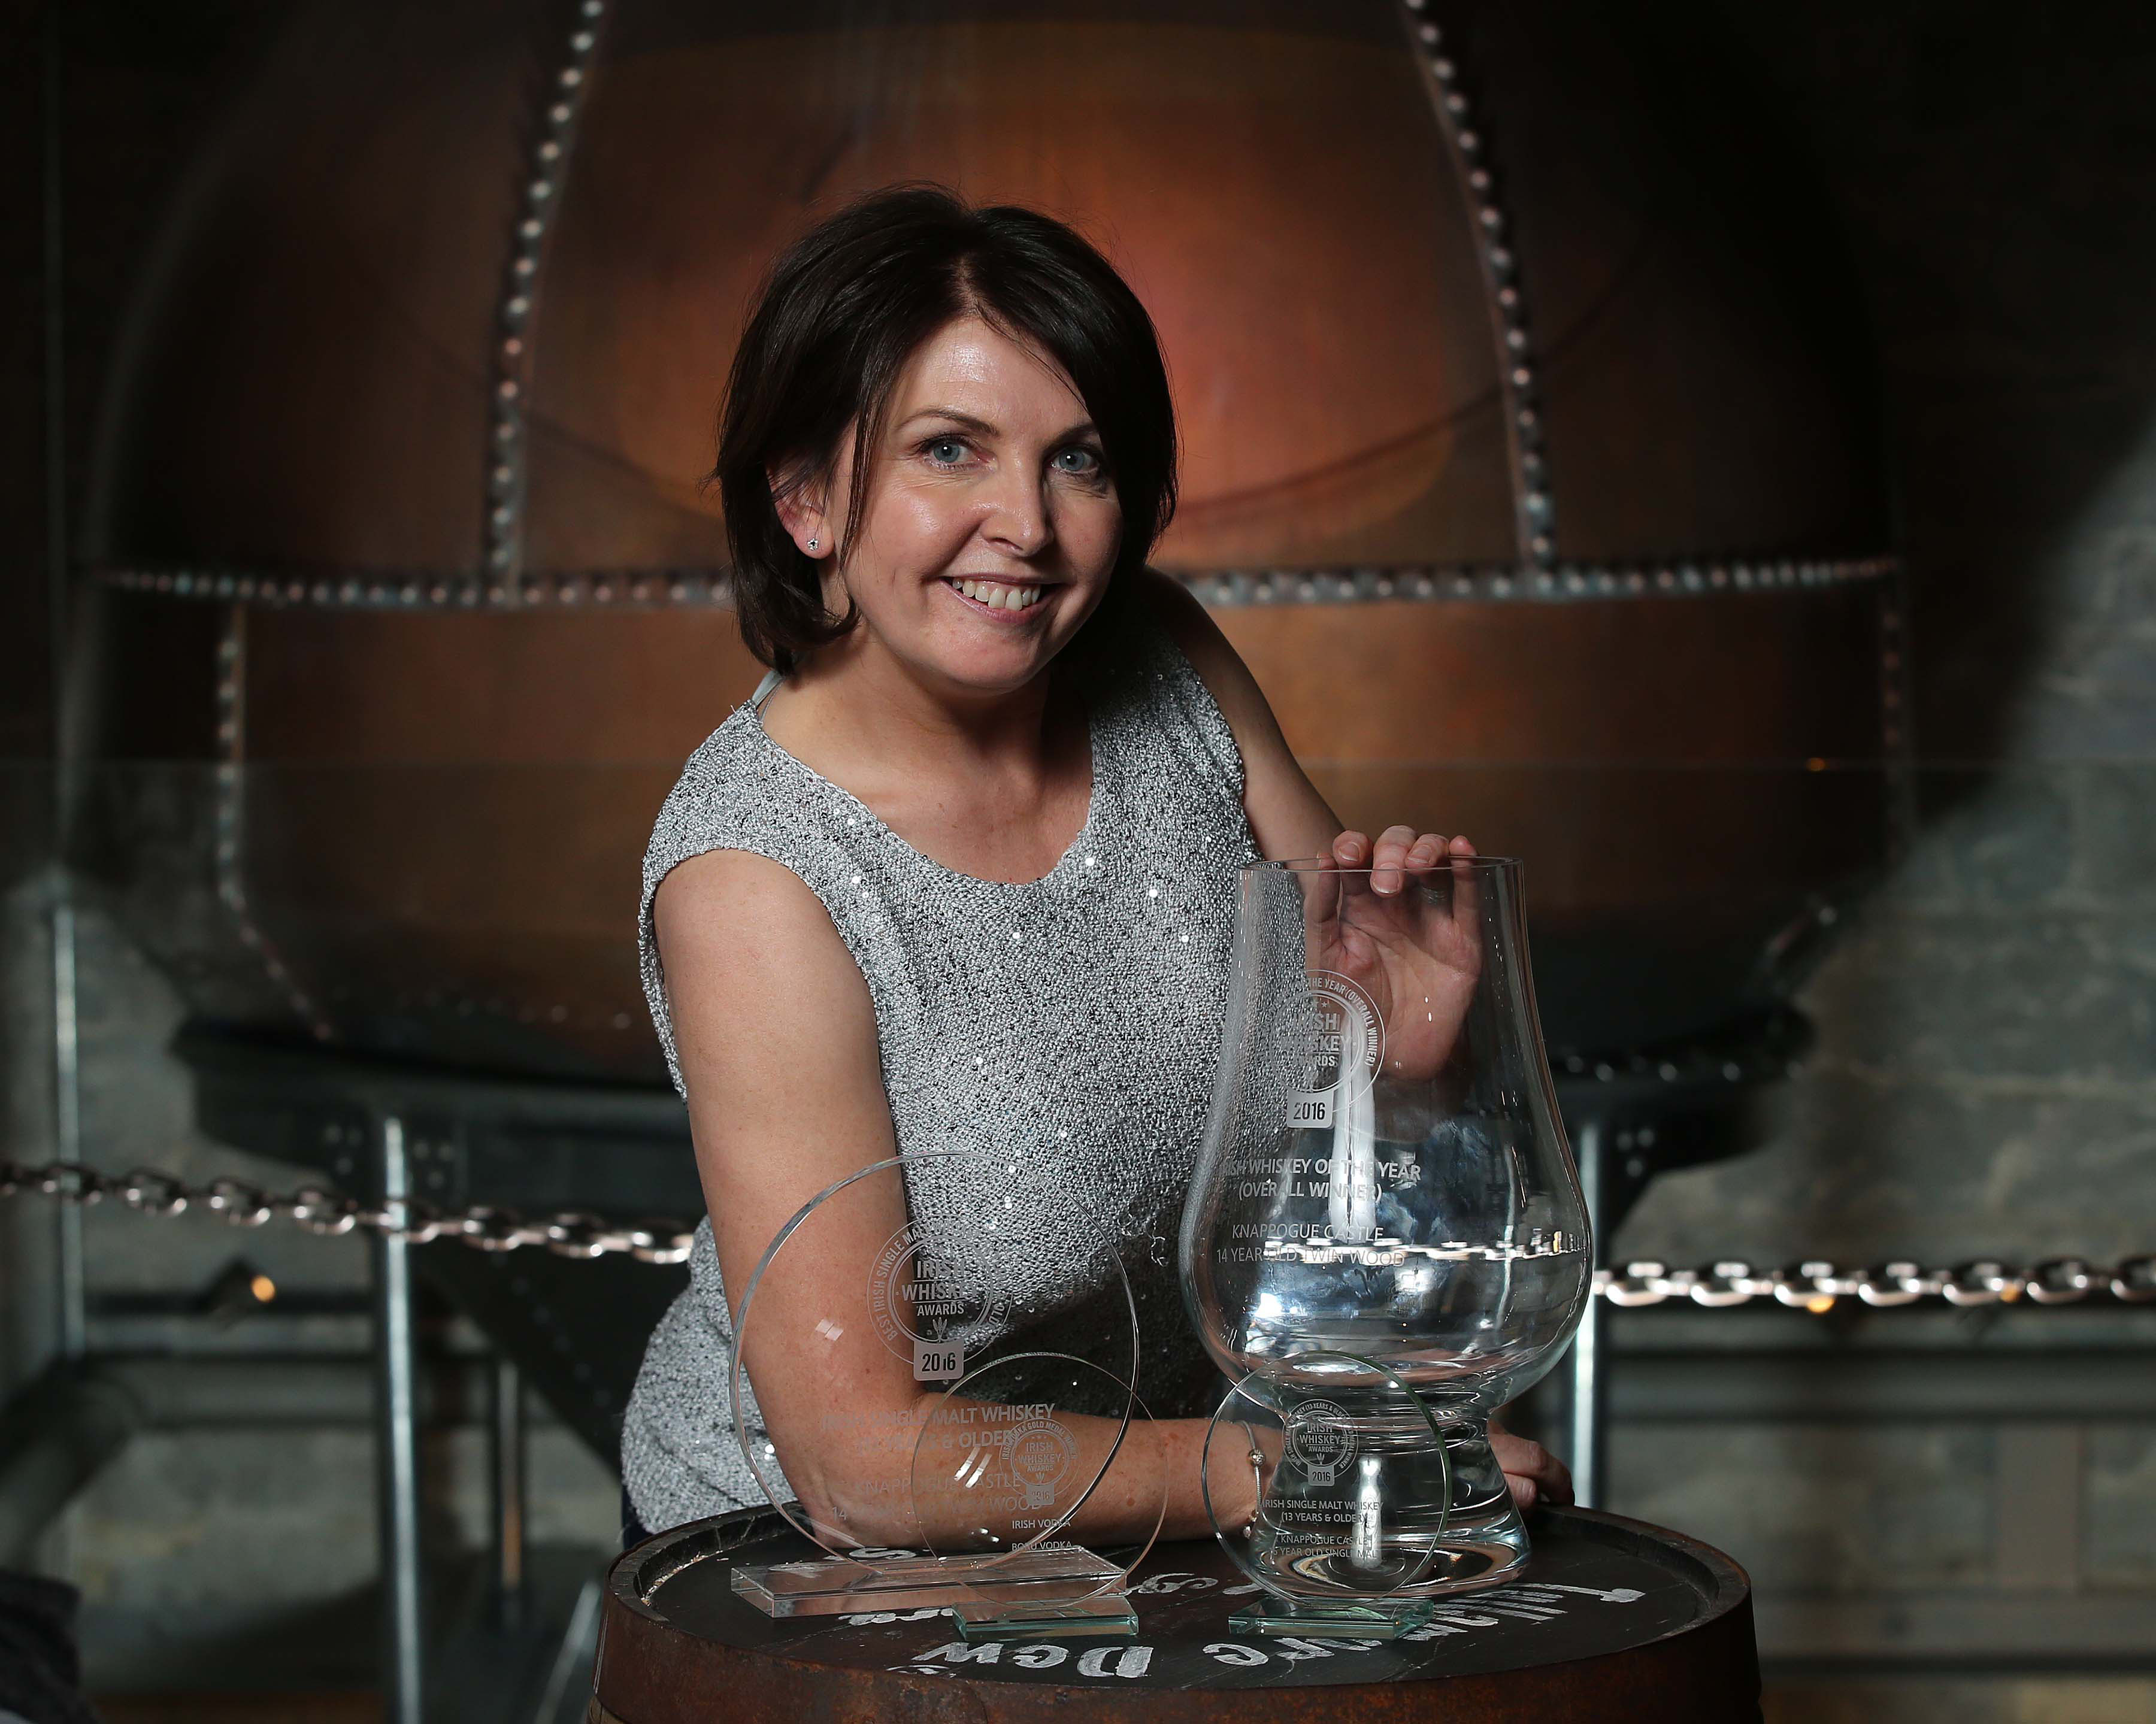 Pictured at the Irish Whiskey Awards 2016 which took place in the Tullamore Distillery Visitor Centre recently (20th October 2016) was Marianne Courtney of Castle Brands who collected the awards for the Irish Whiskey of the Year 2016 for Knappogue Castle 14 Year Old Twin Wood, which also won the best in the Irish Single Malts (13 years and older) and Gold medals for Knappogue Castle 16 Year old Single Malt and Boru Vodka.  For further information please contact O'Leary PR 01-6789888